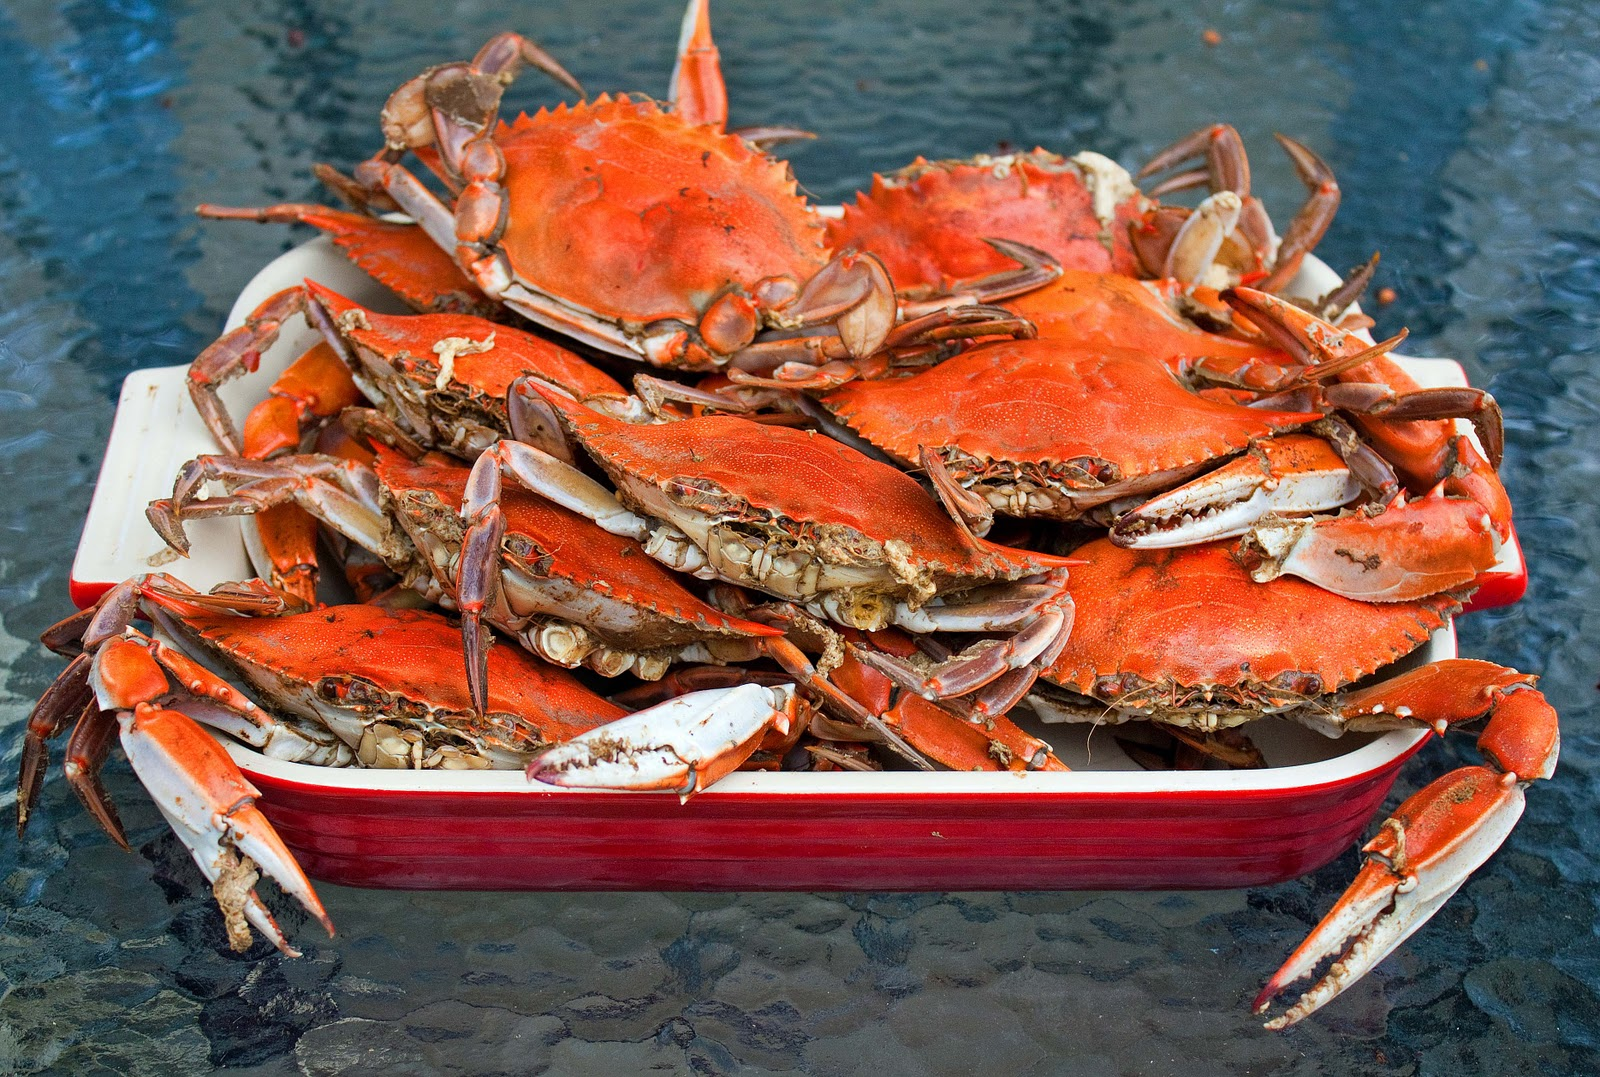 ... crabs, ontario king crabs for sale :: ~red and black crabs found in